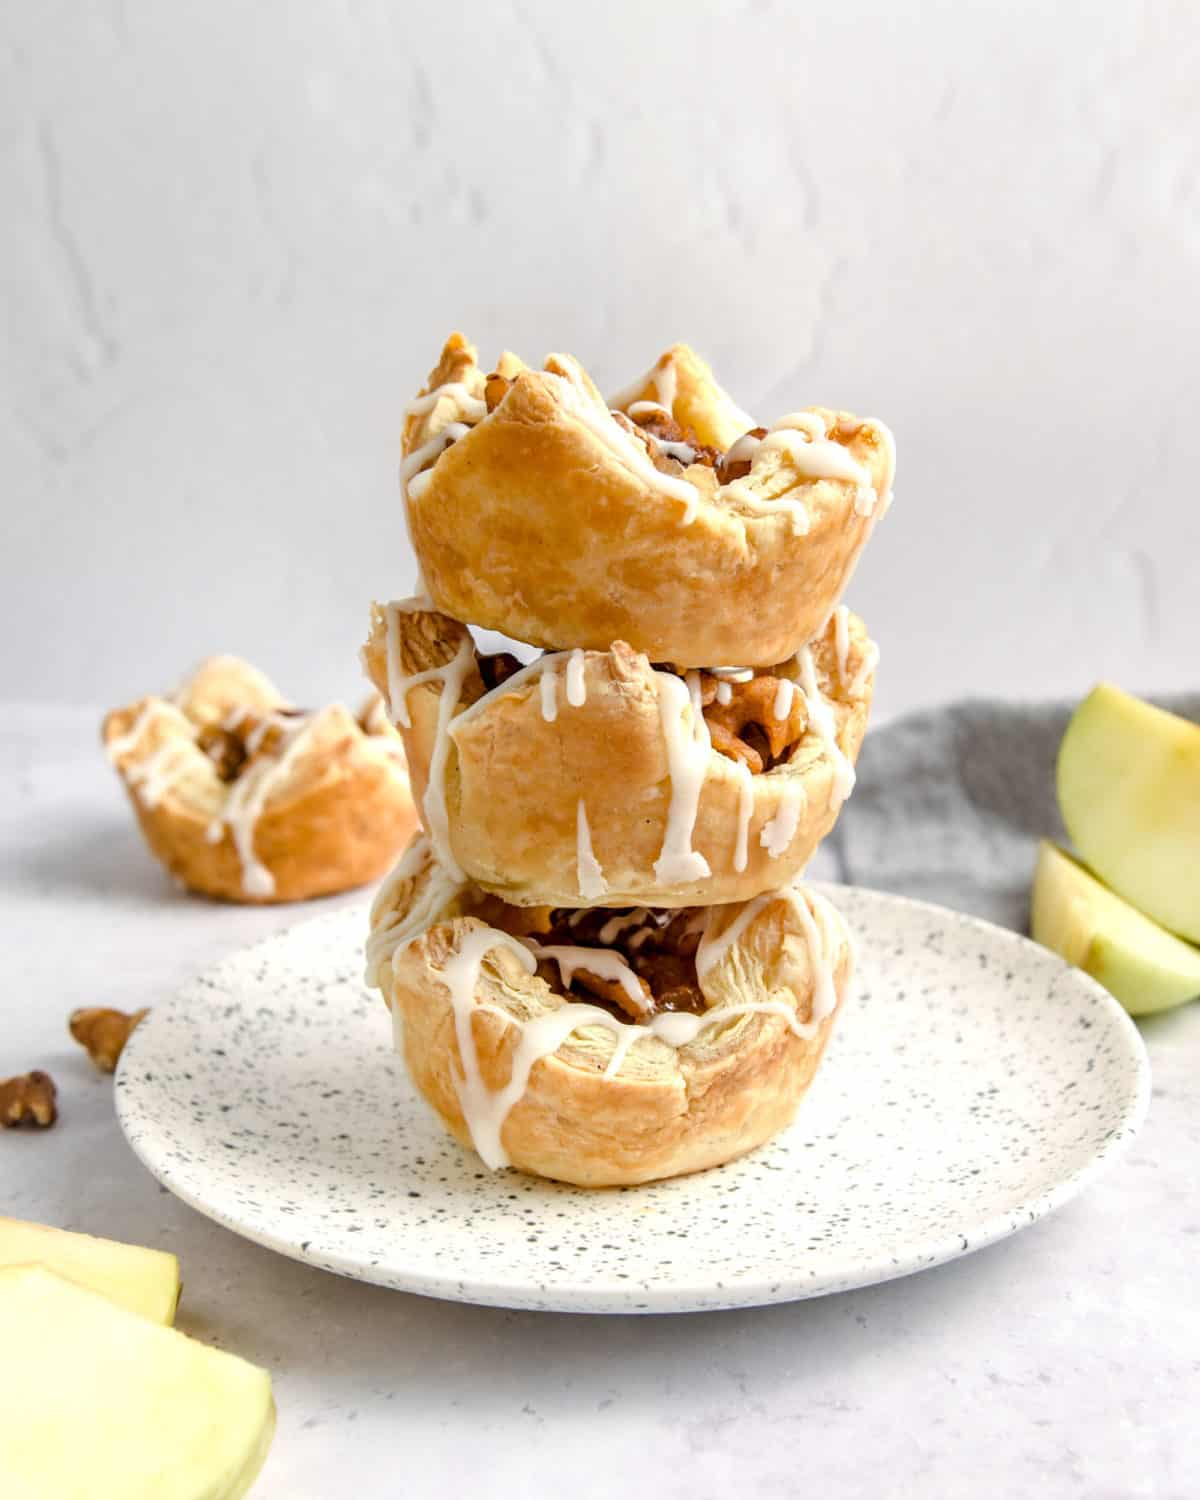 A stack of apple pastries.